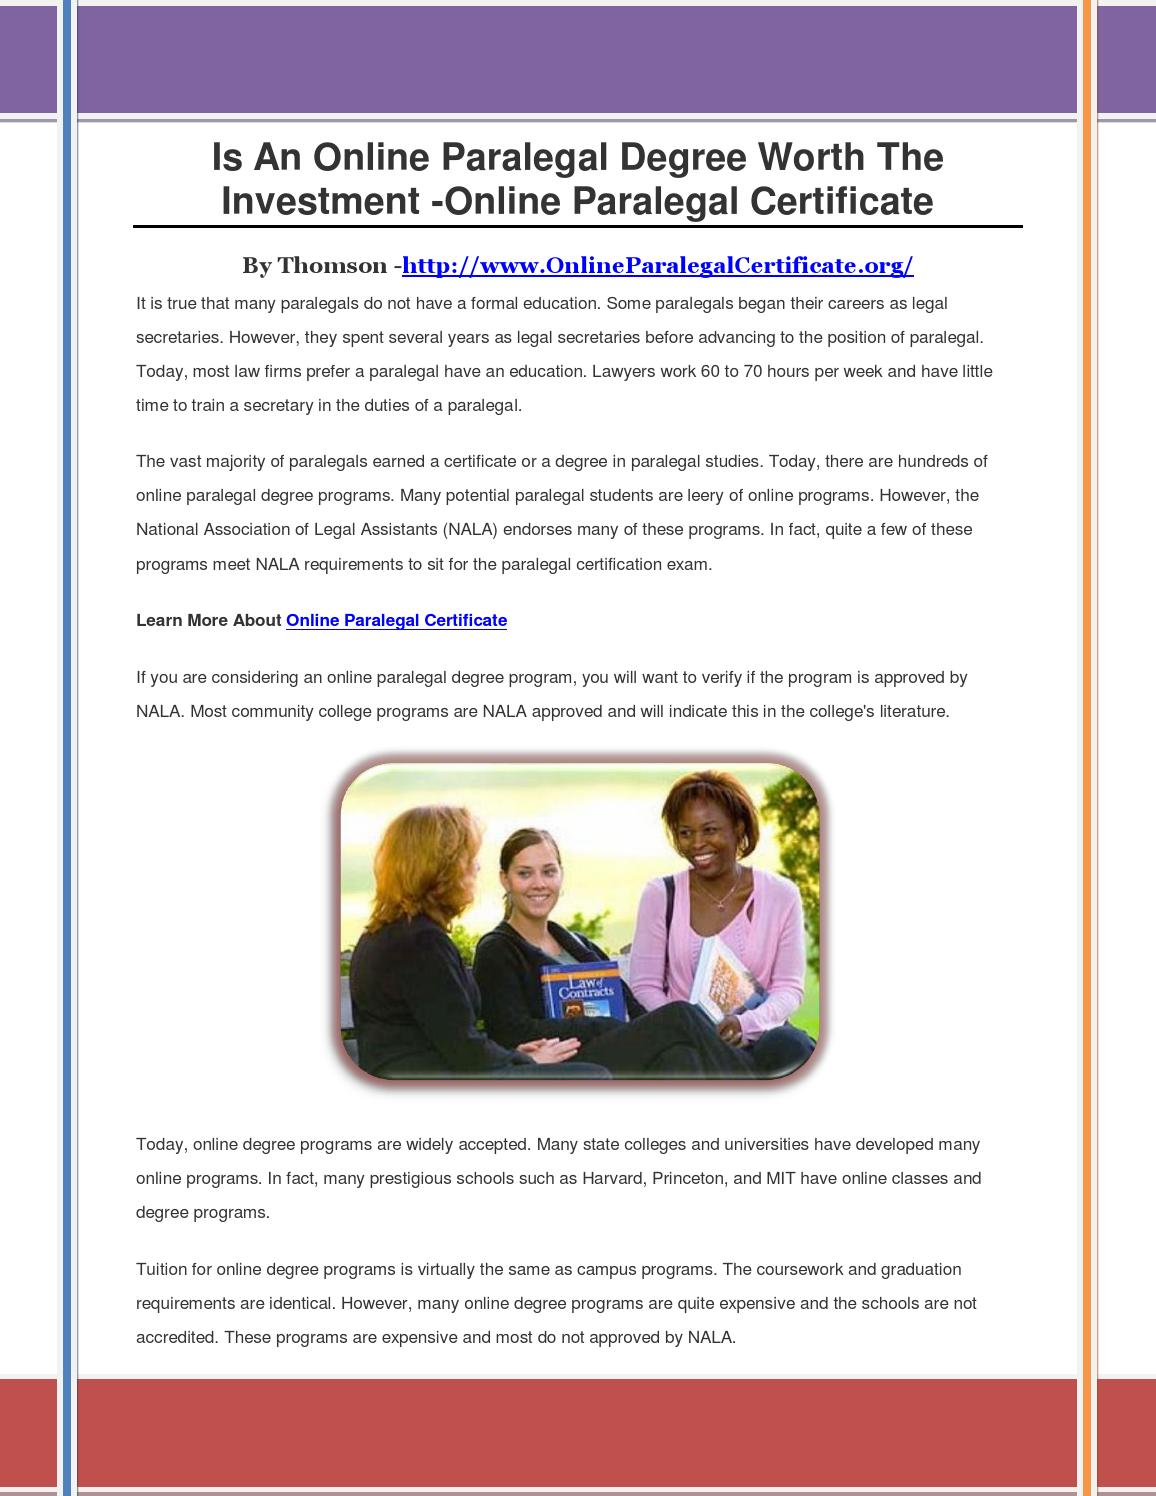 Is An Online Paralegal Degree Worth The Investment By Erttyy Issuu